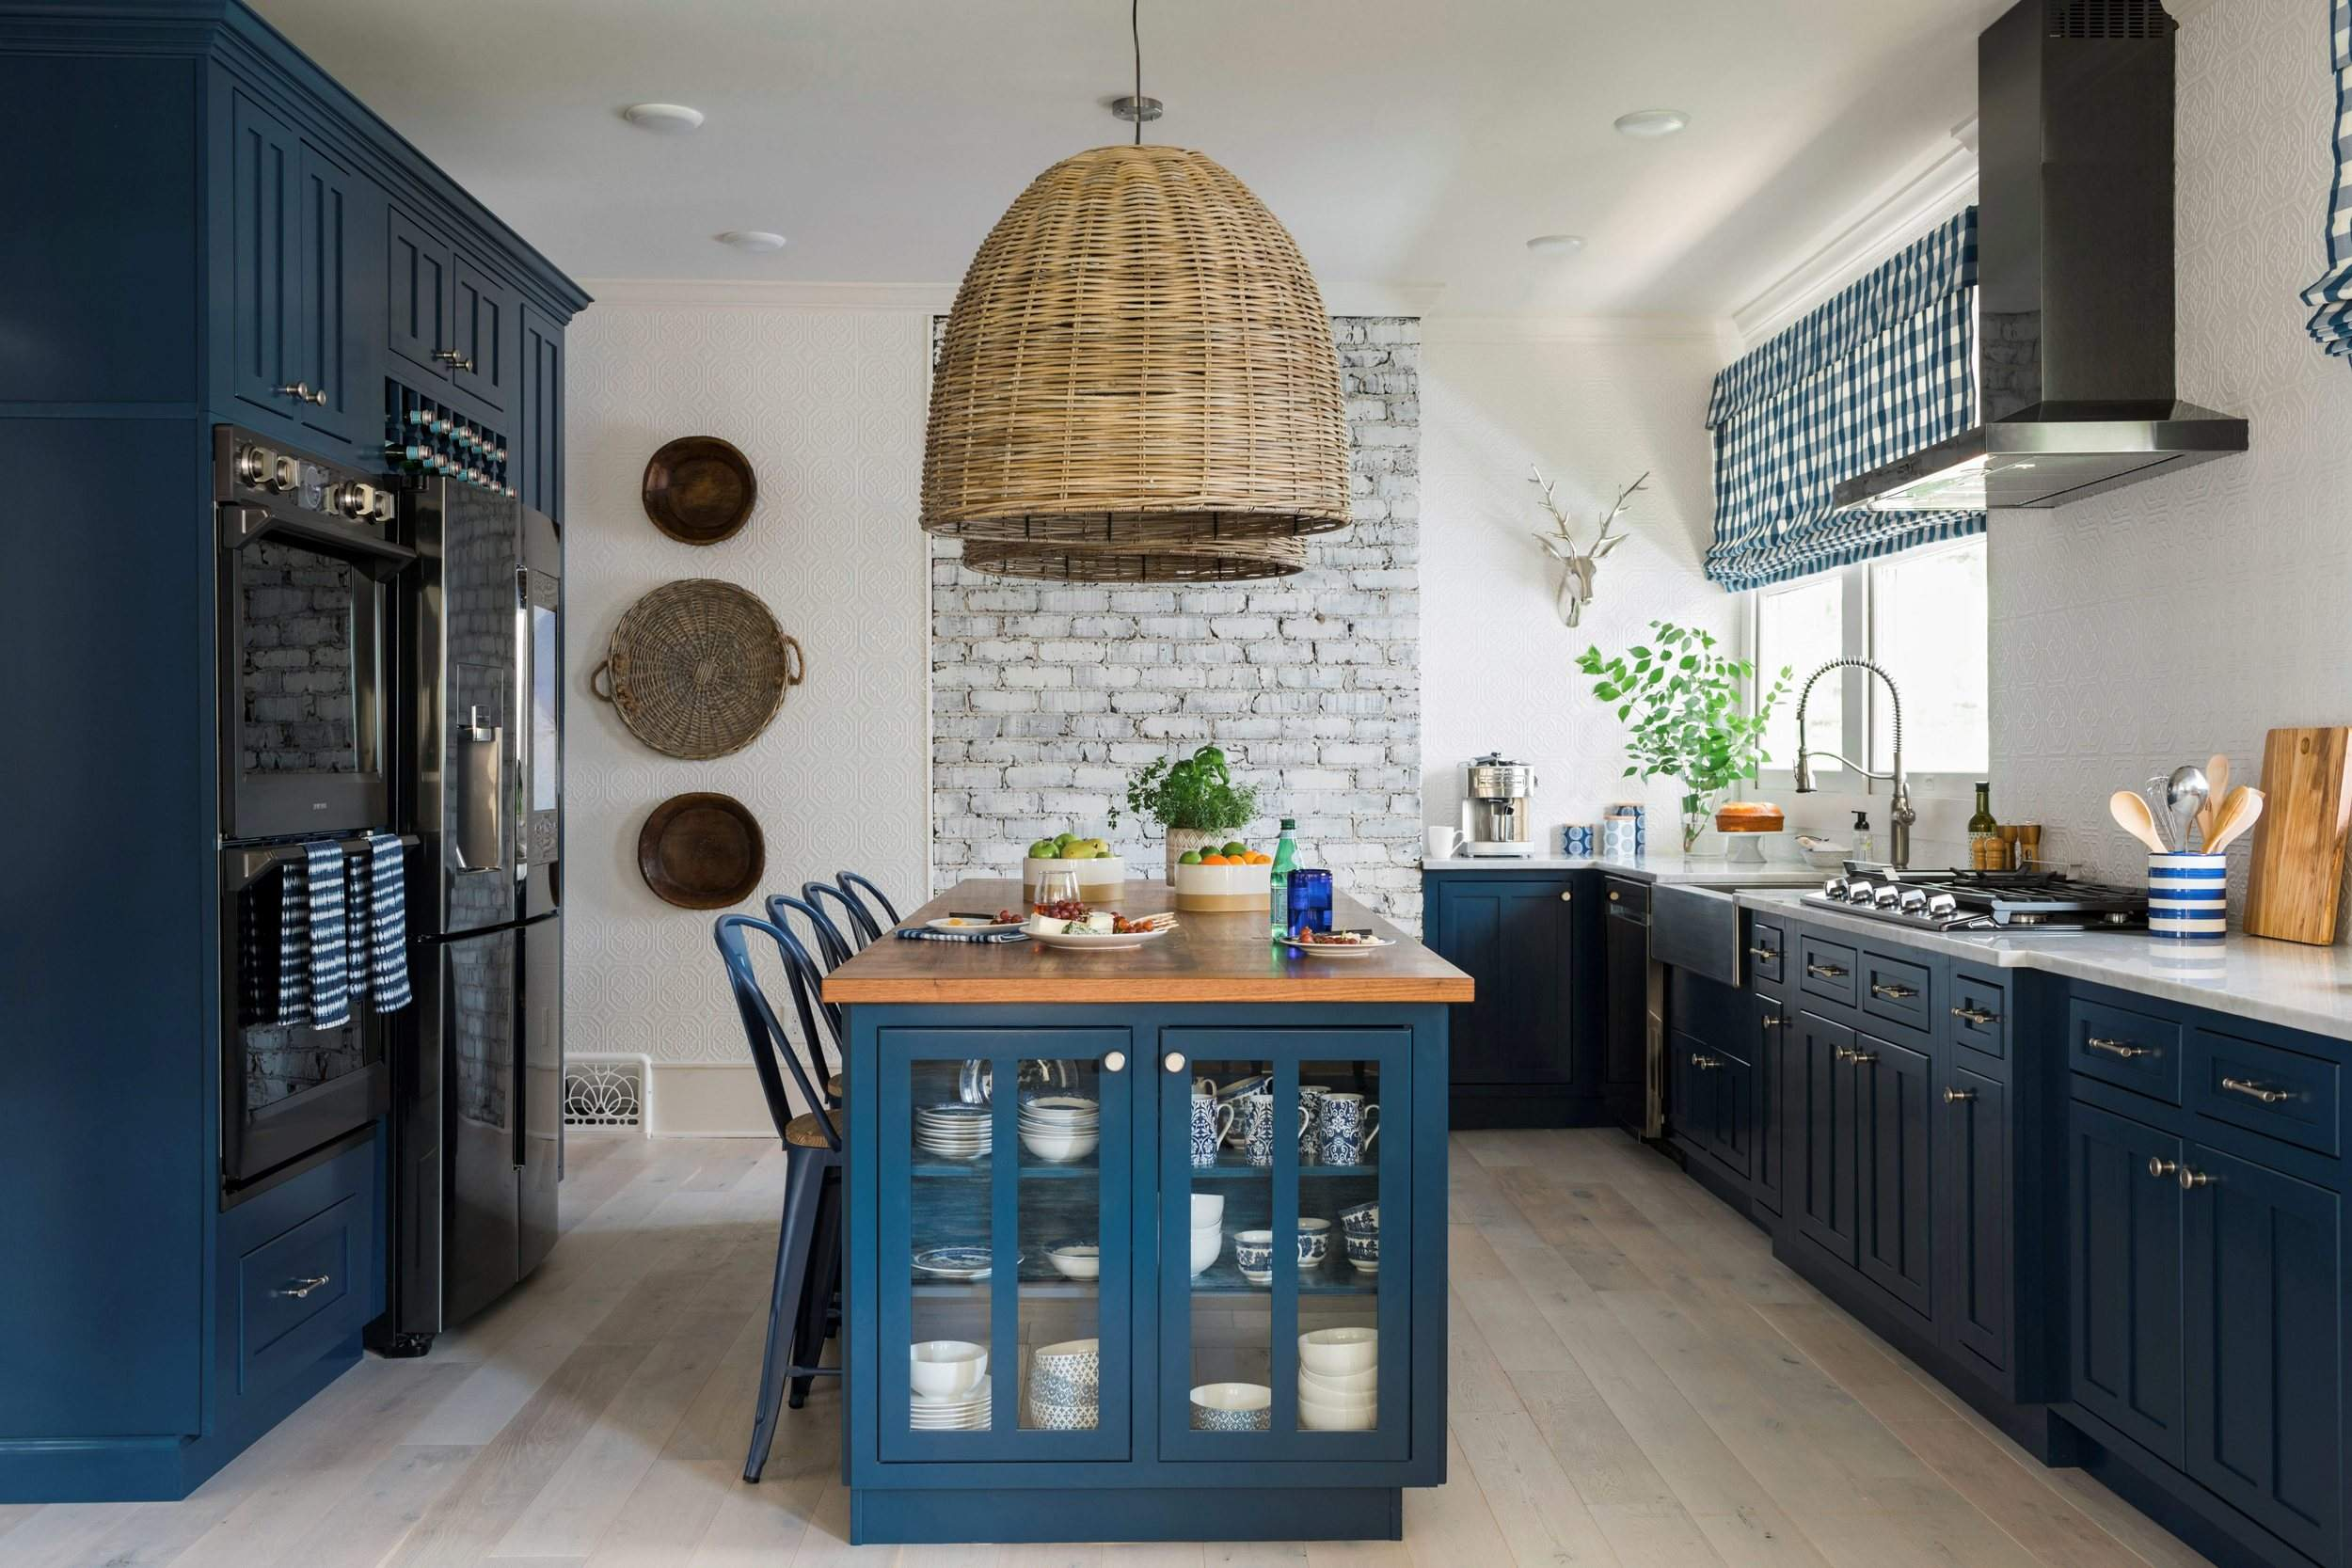 A kitchen designed by brian patrick flynn features a l shaped perimeter design with lower cabinets painted a rich shade of navy blue a style choice that